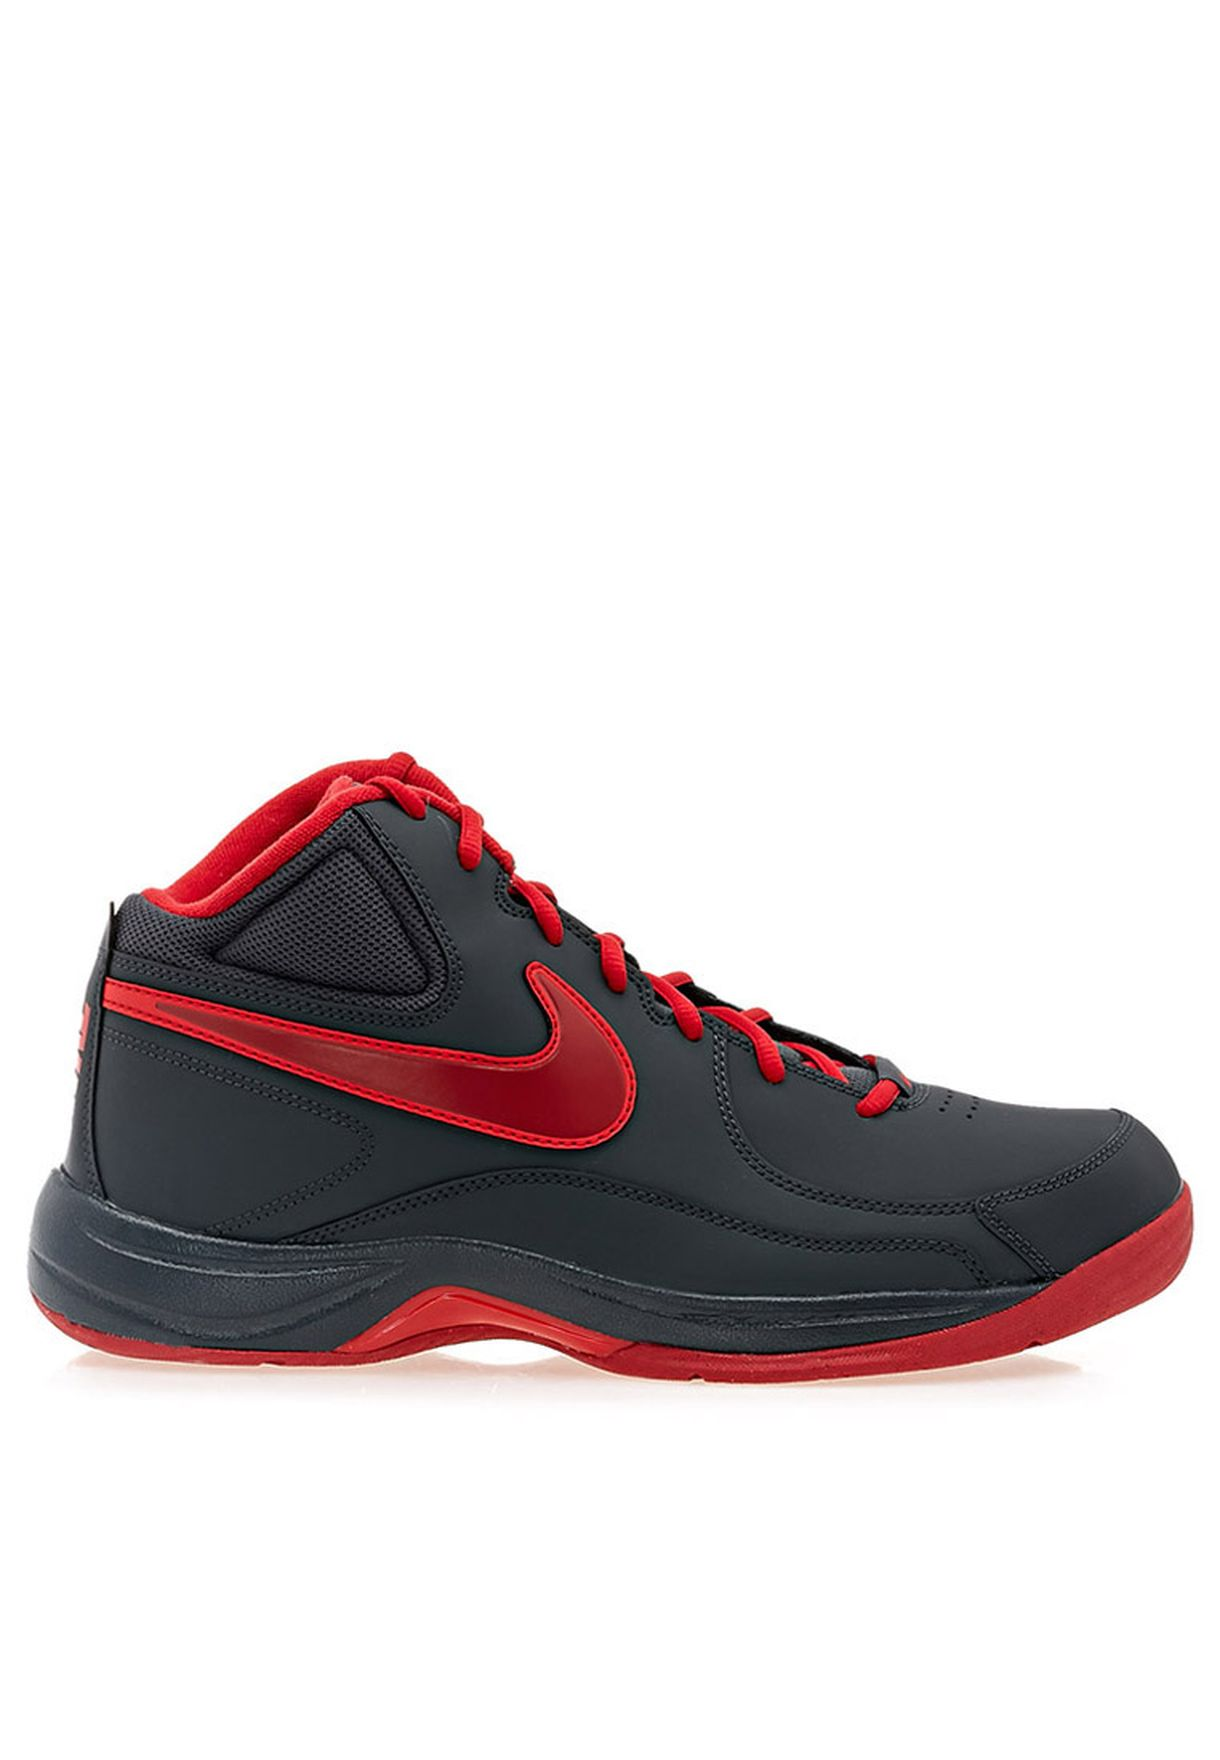 924d4f51a4a0 Shop Nike The Overplay Vii Basketball Shoes 511372-017 for Men in ...